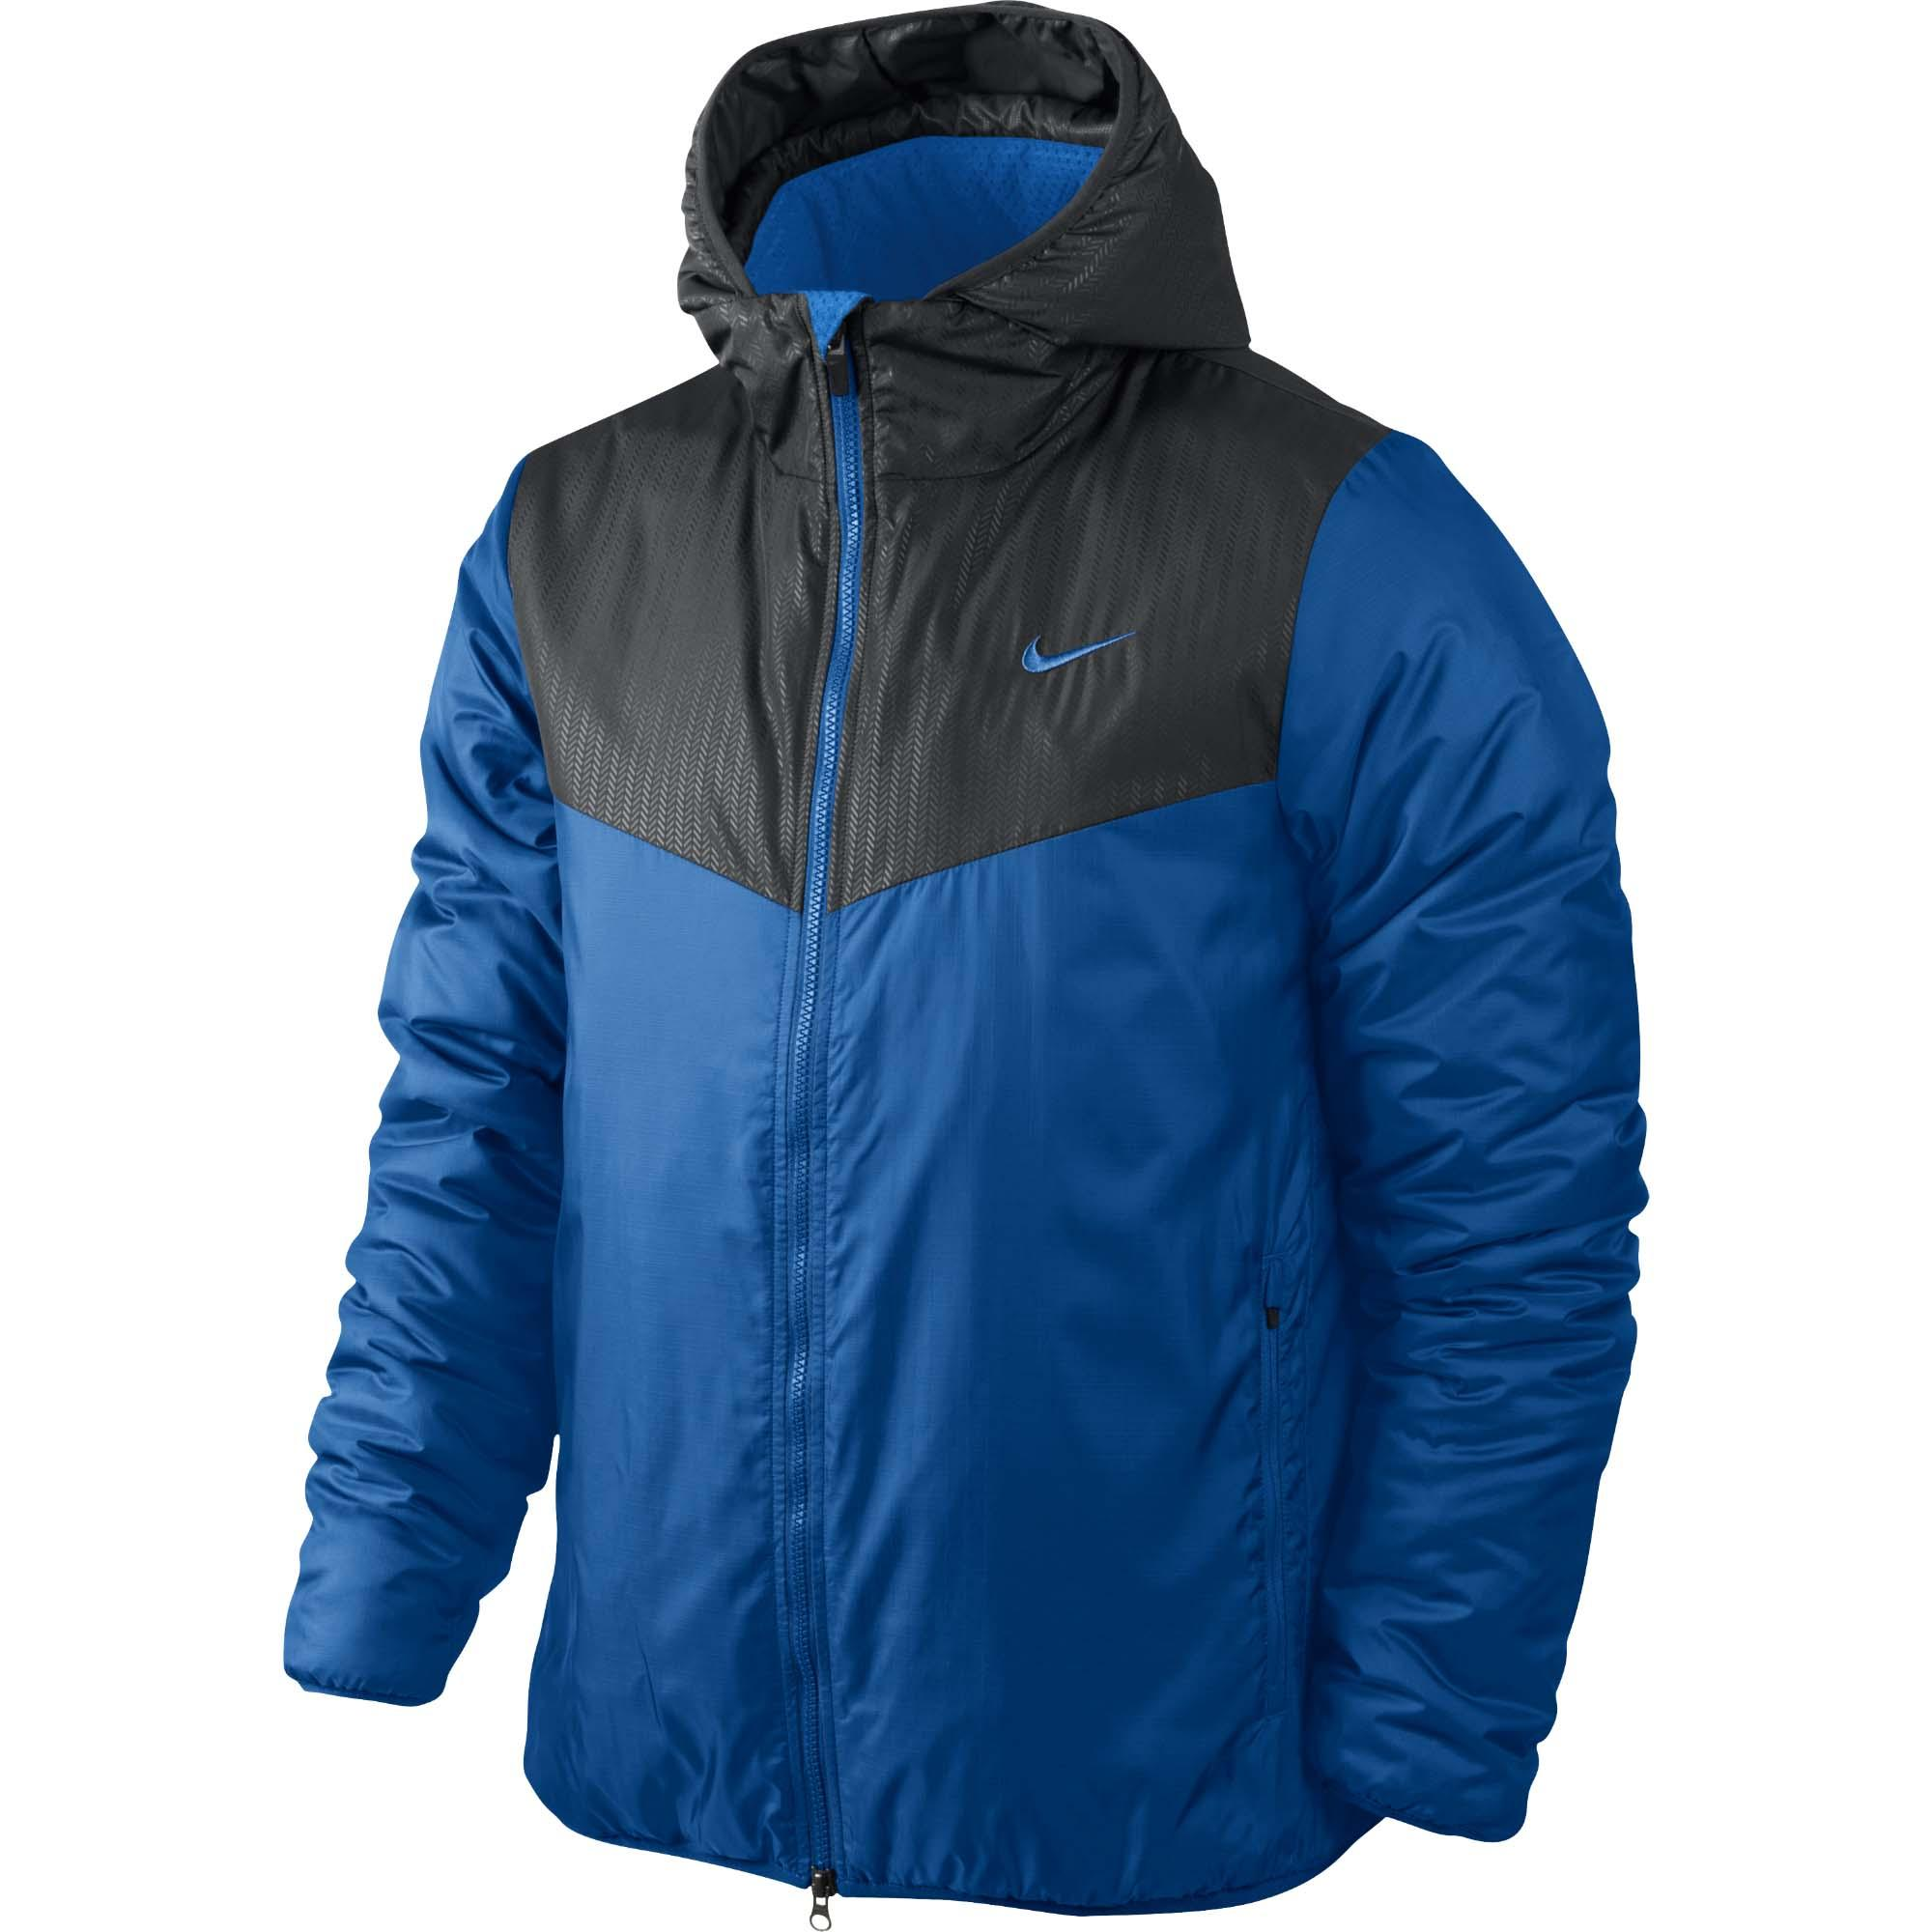 eae4f9d347e6 Nike Power Fill Jacket Man buy and offers on Outletinn